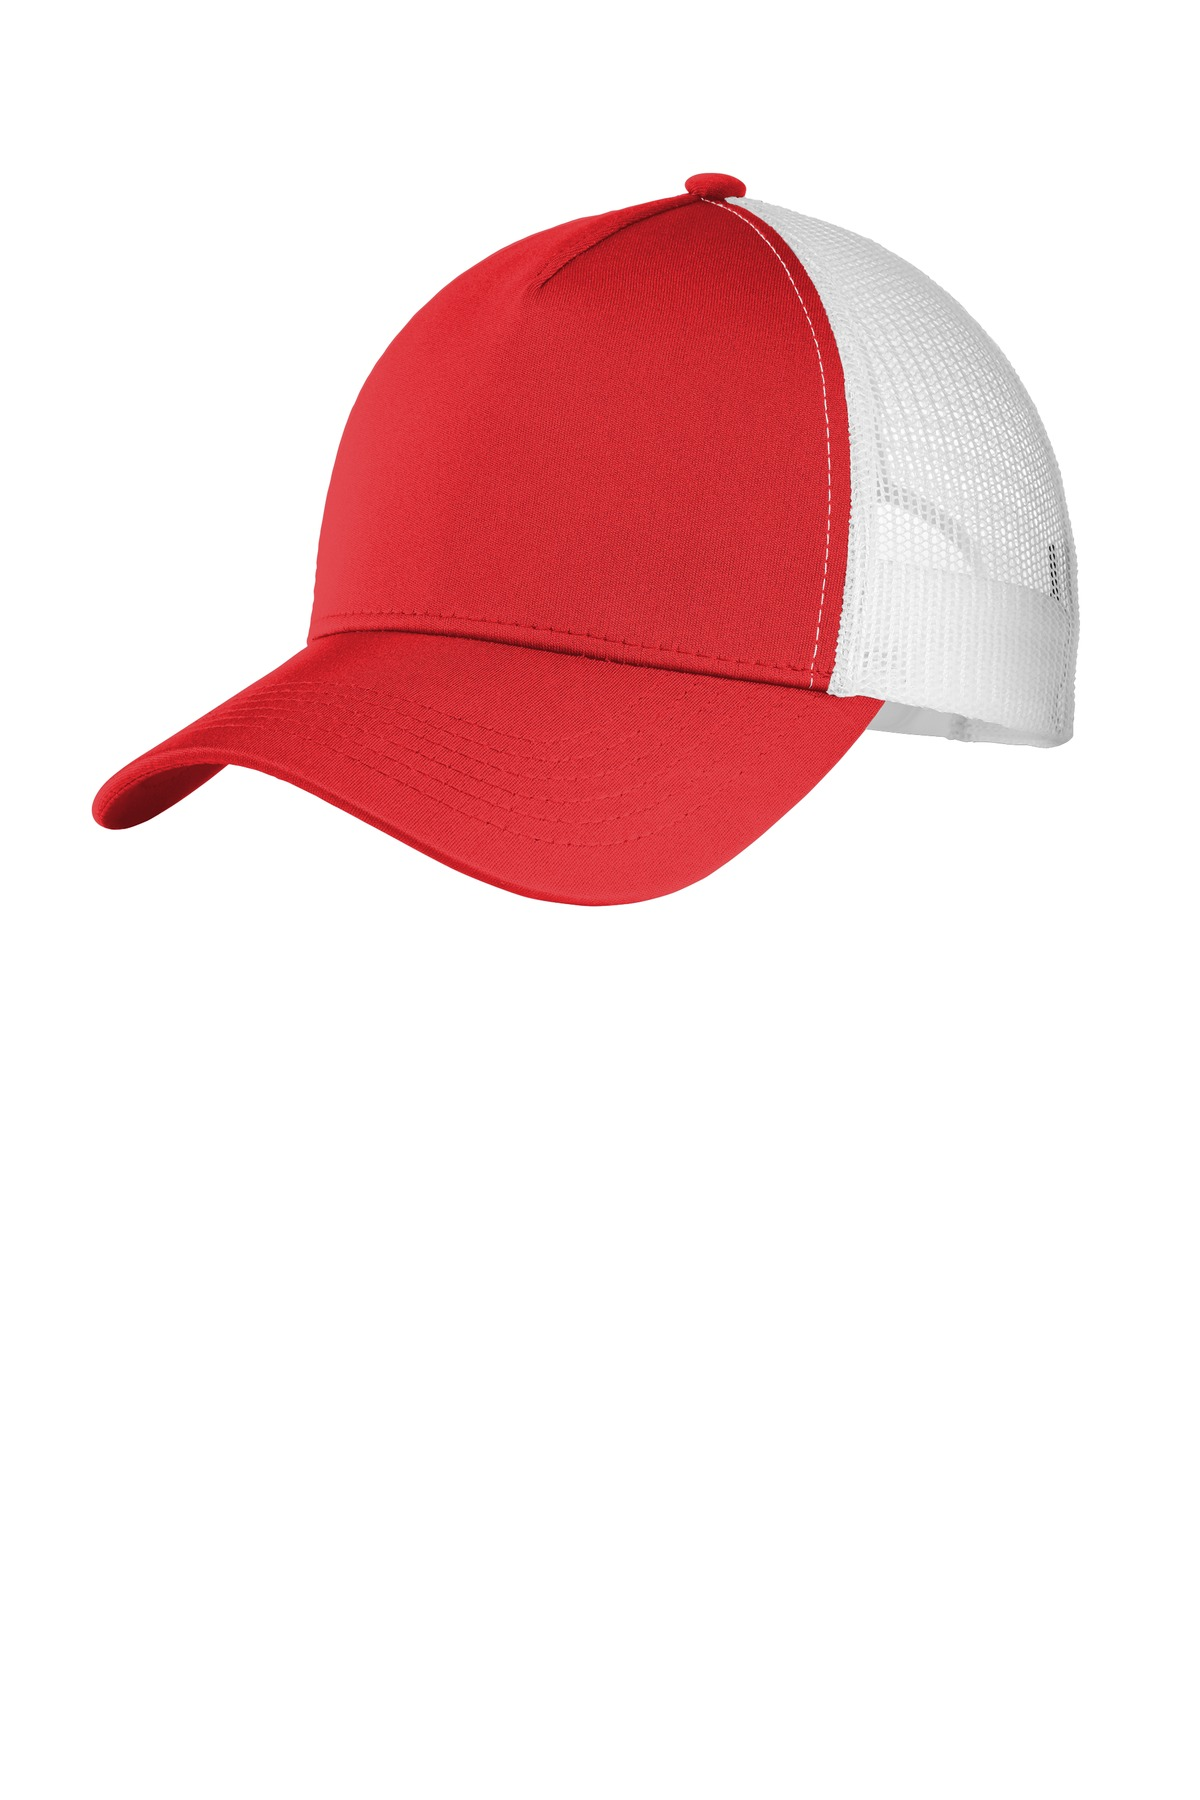 Sport-Tek  ®  PosiCharge  ®  Competitor  ™  Mesh Back Cap. STC36 - True Red/ White